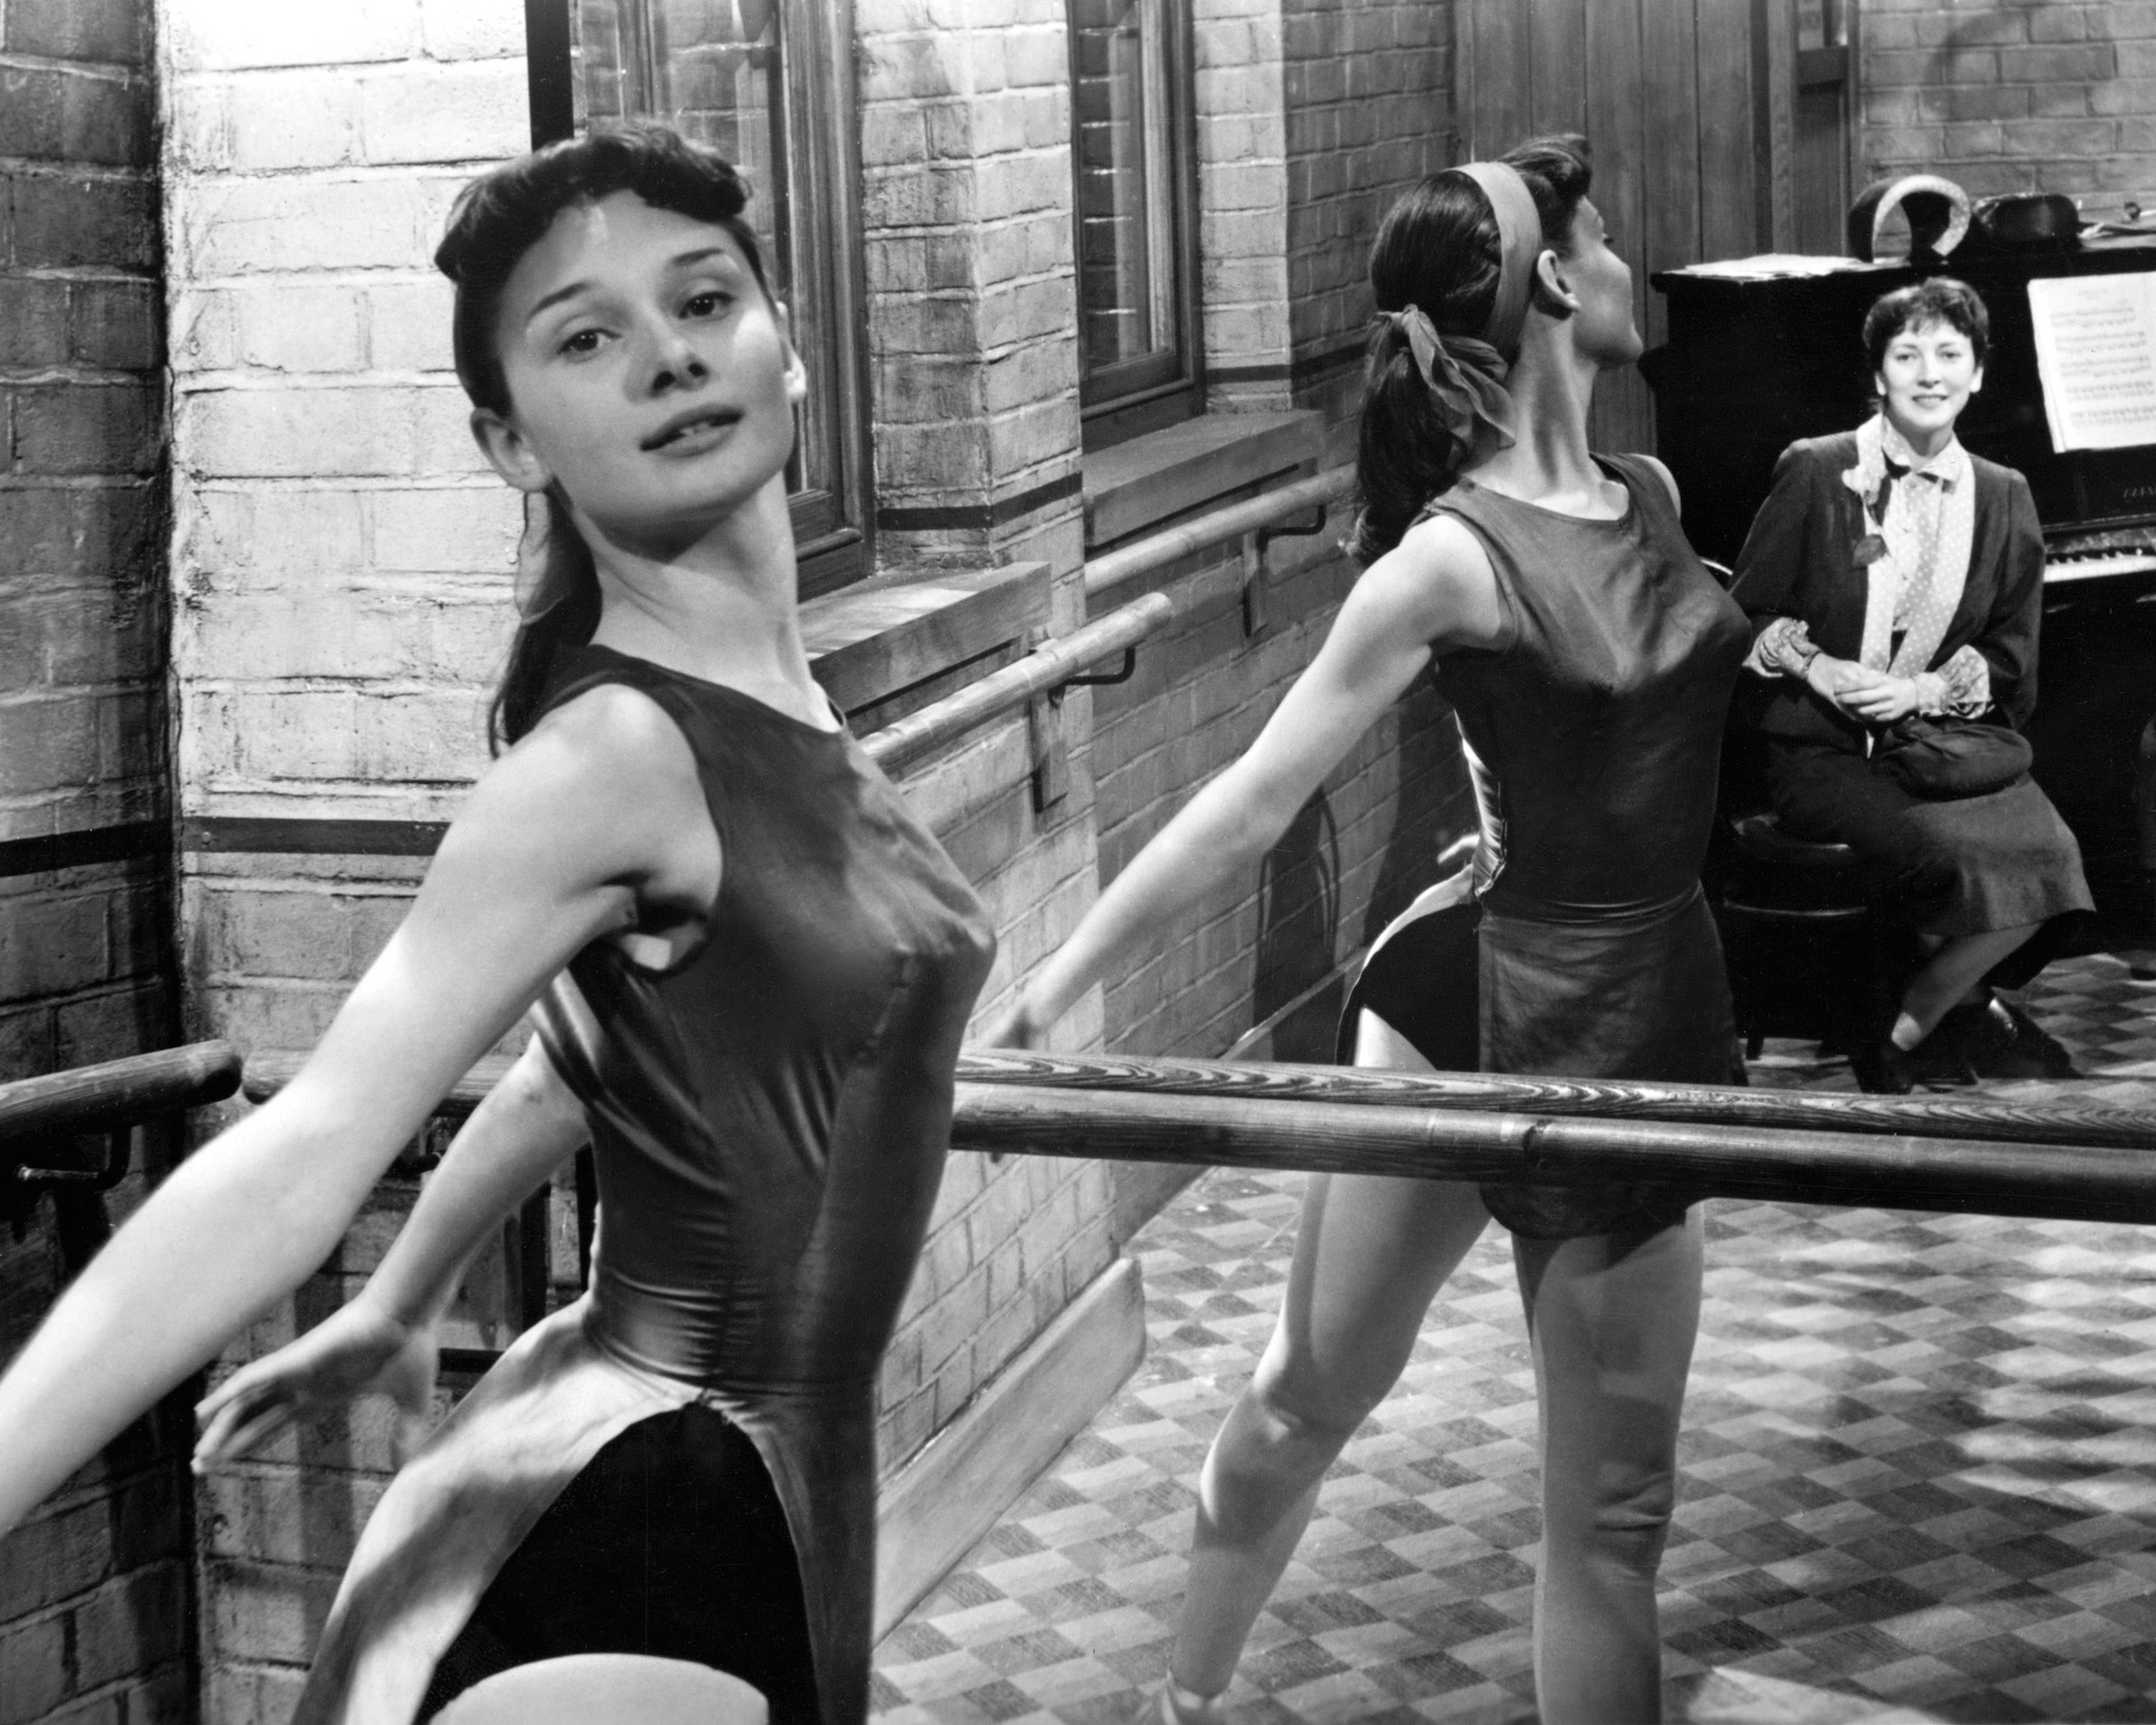 Actor and dancer Audrey Hepburn rehearsing at the barre, circa 1950.